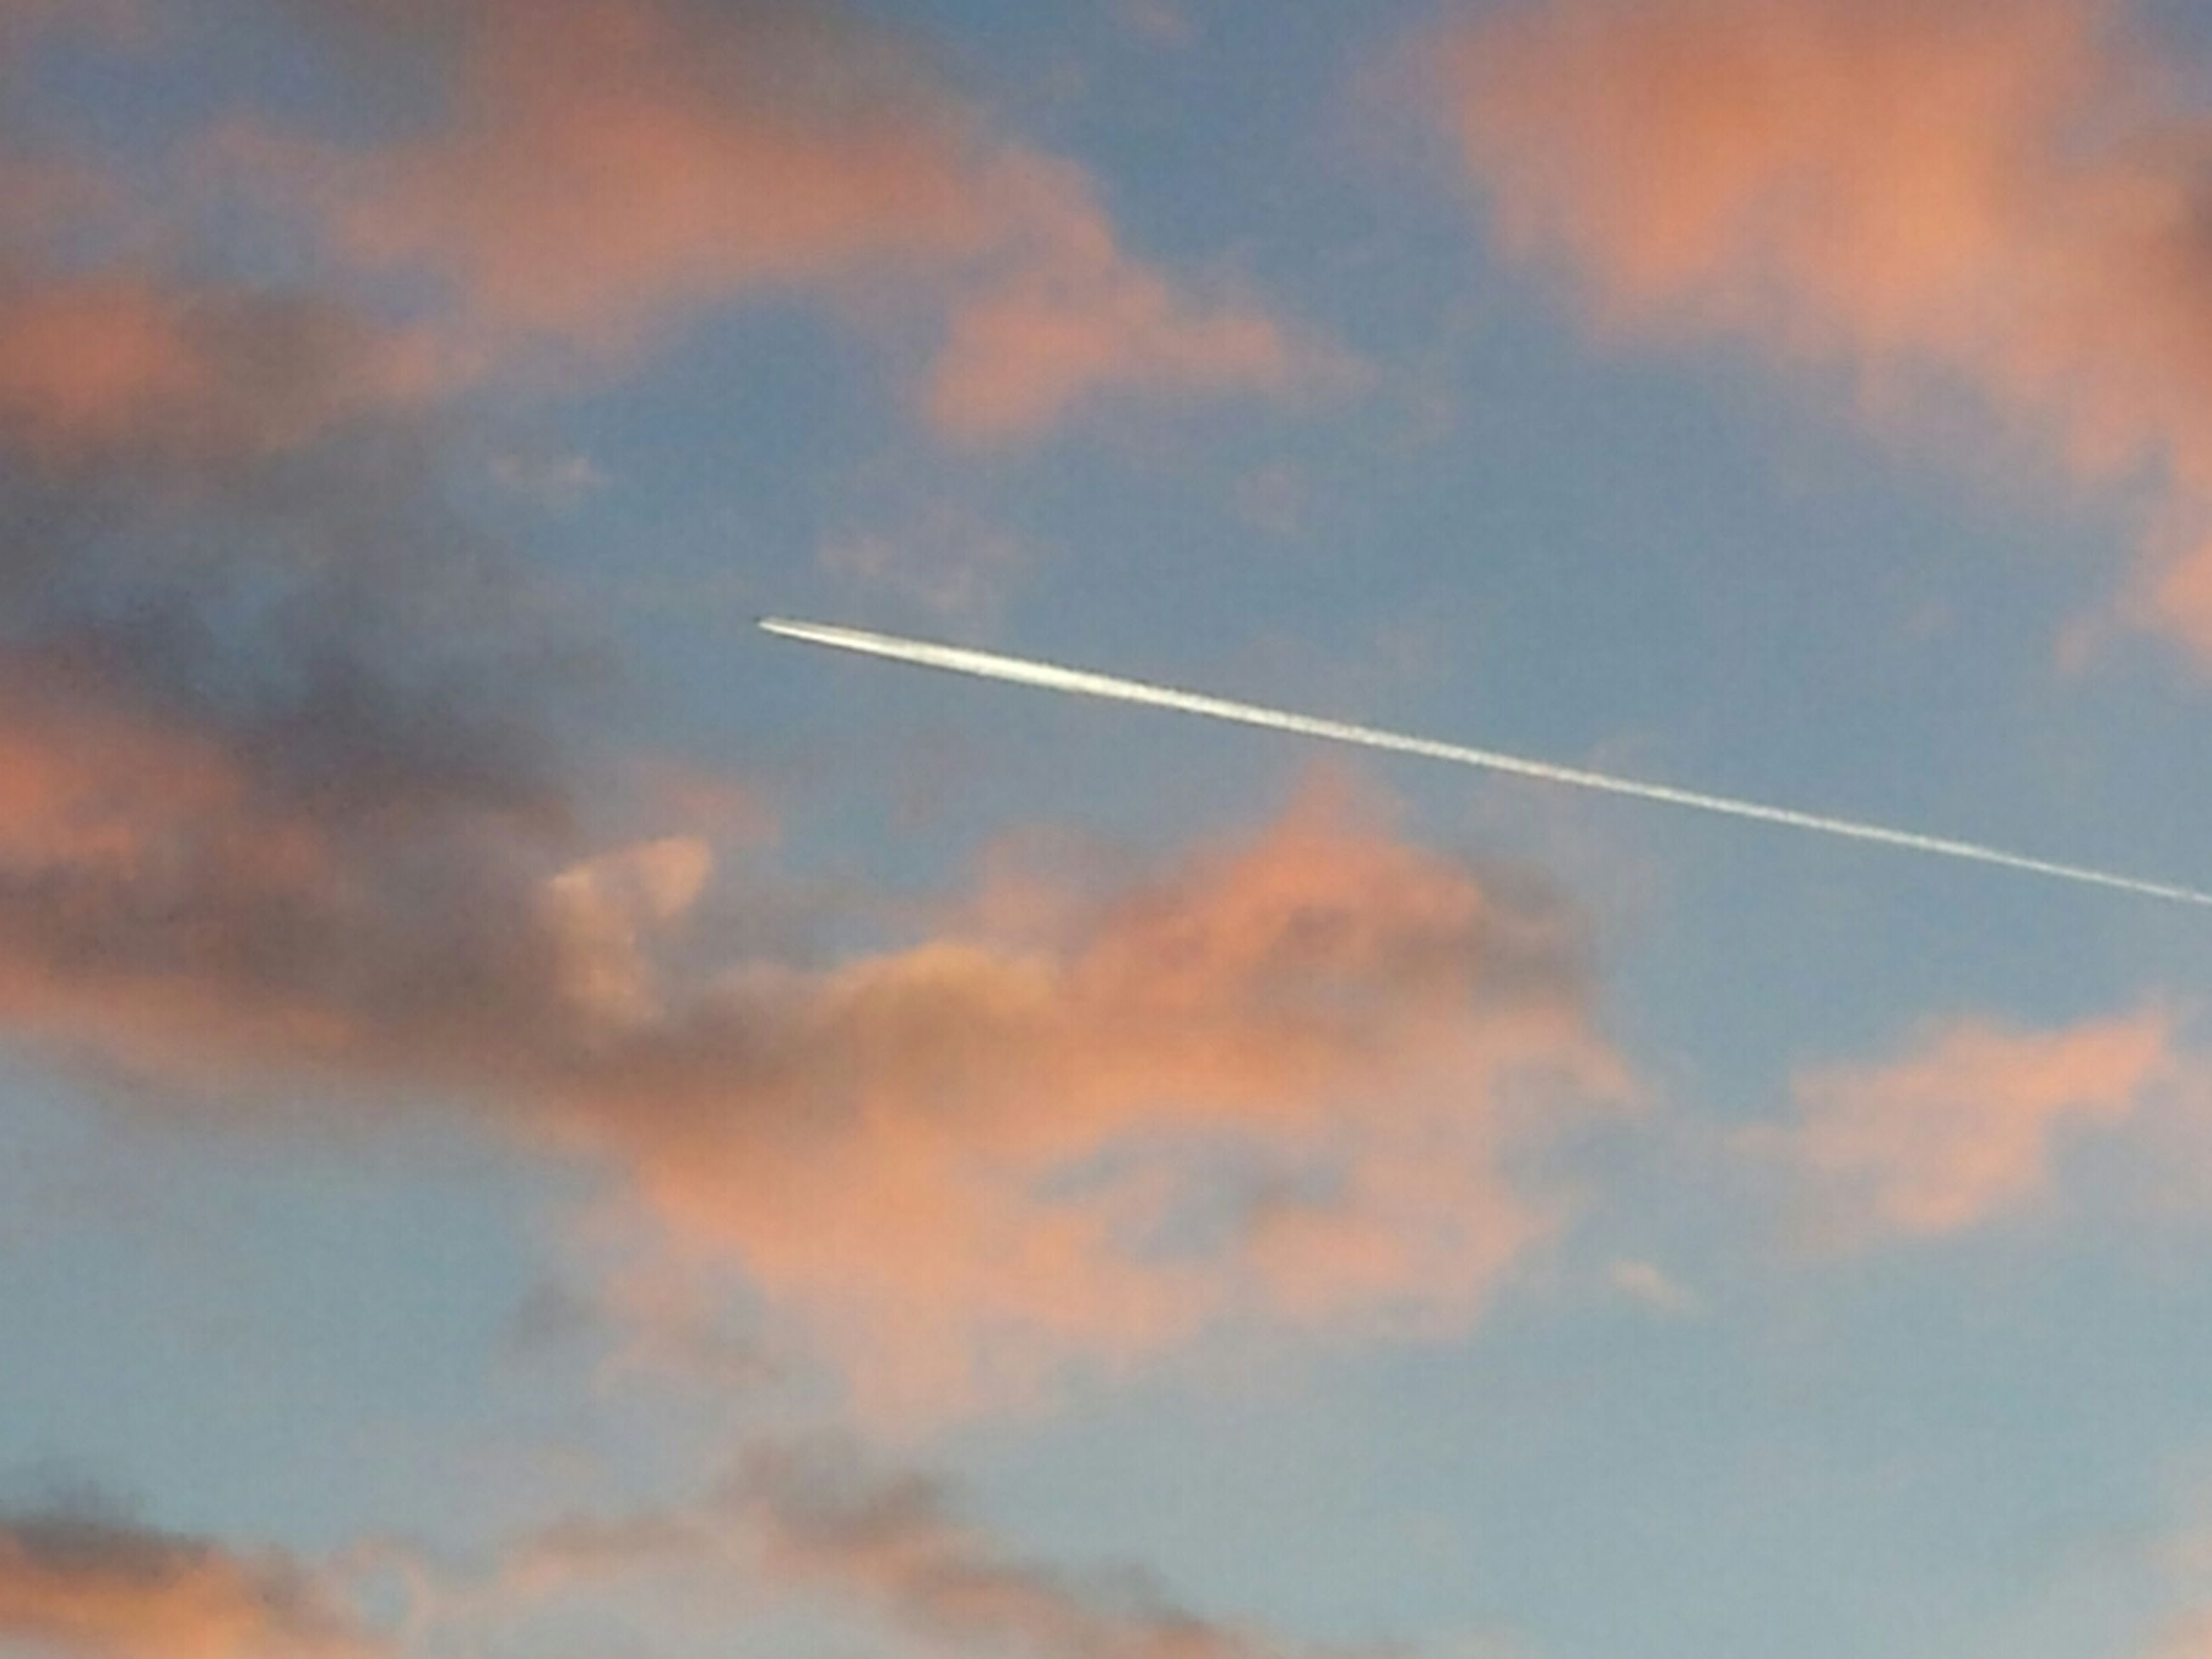 sky, airplane, cloud - sky, low angle view, air vehicle, flying, transportation, cloudy, scenics, sunset, cloud, beauty in nature, nature, vapor trail, mode of transport, cloudscape, mid-air, sky only, tranquility, aircraft wing